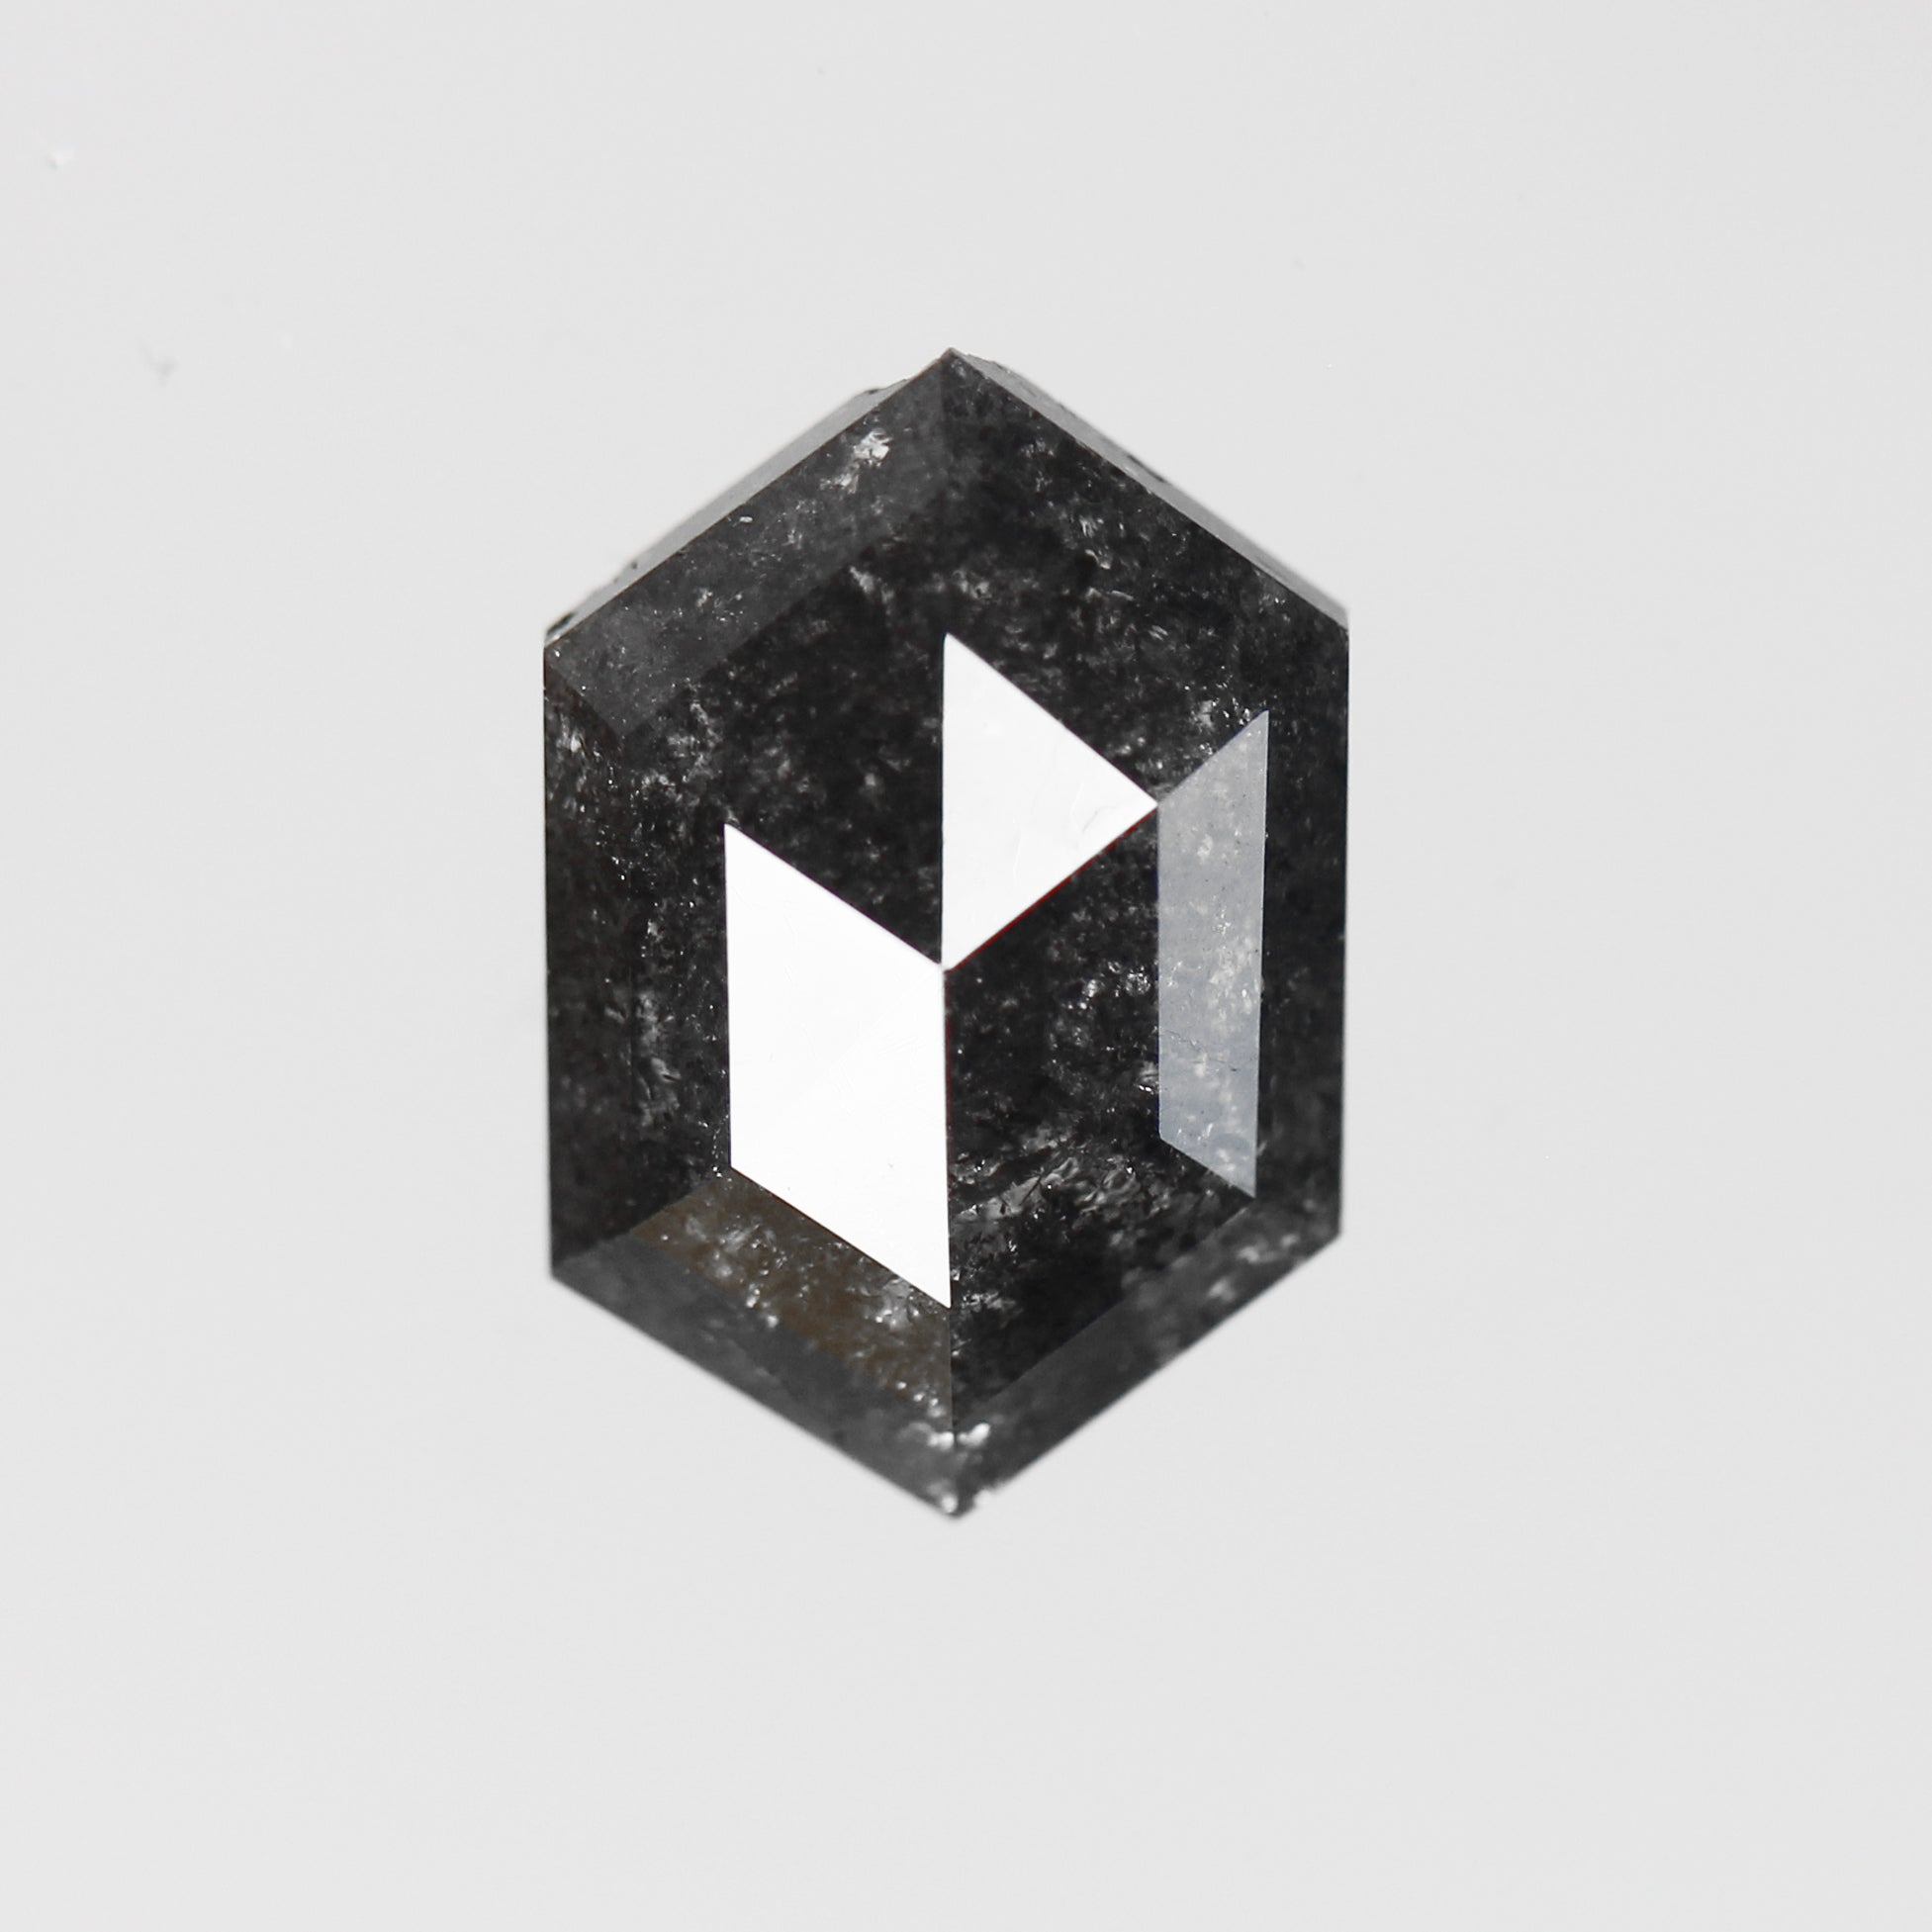 4.02 Carat Hexagon Celestial Diamond for Custom Work - Inventory Code HRB402 - NB - Celestial Diamonds ® by Midwinter Co.